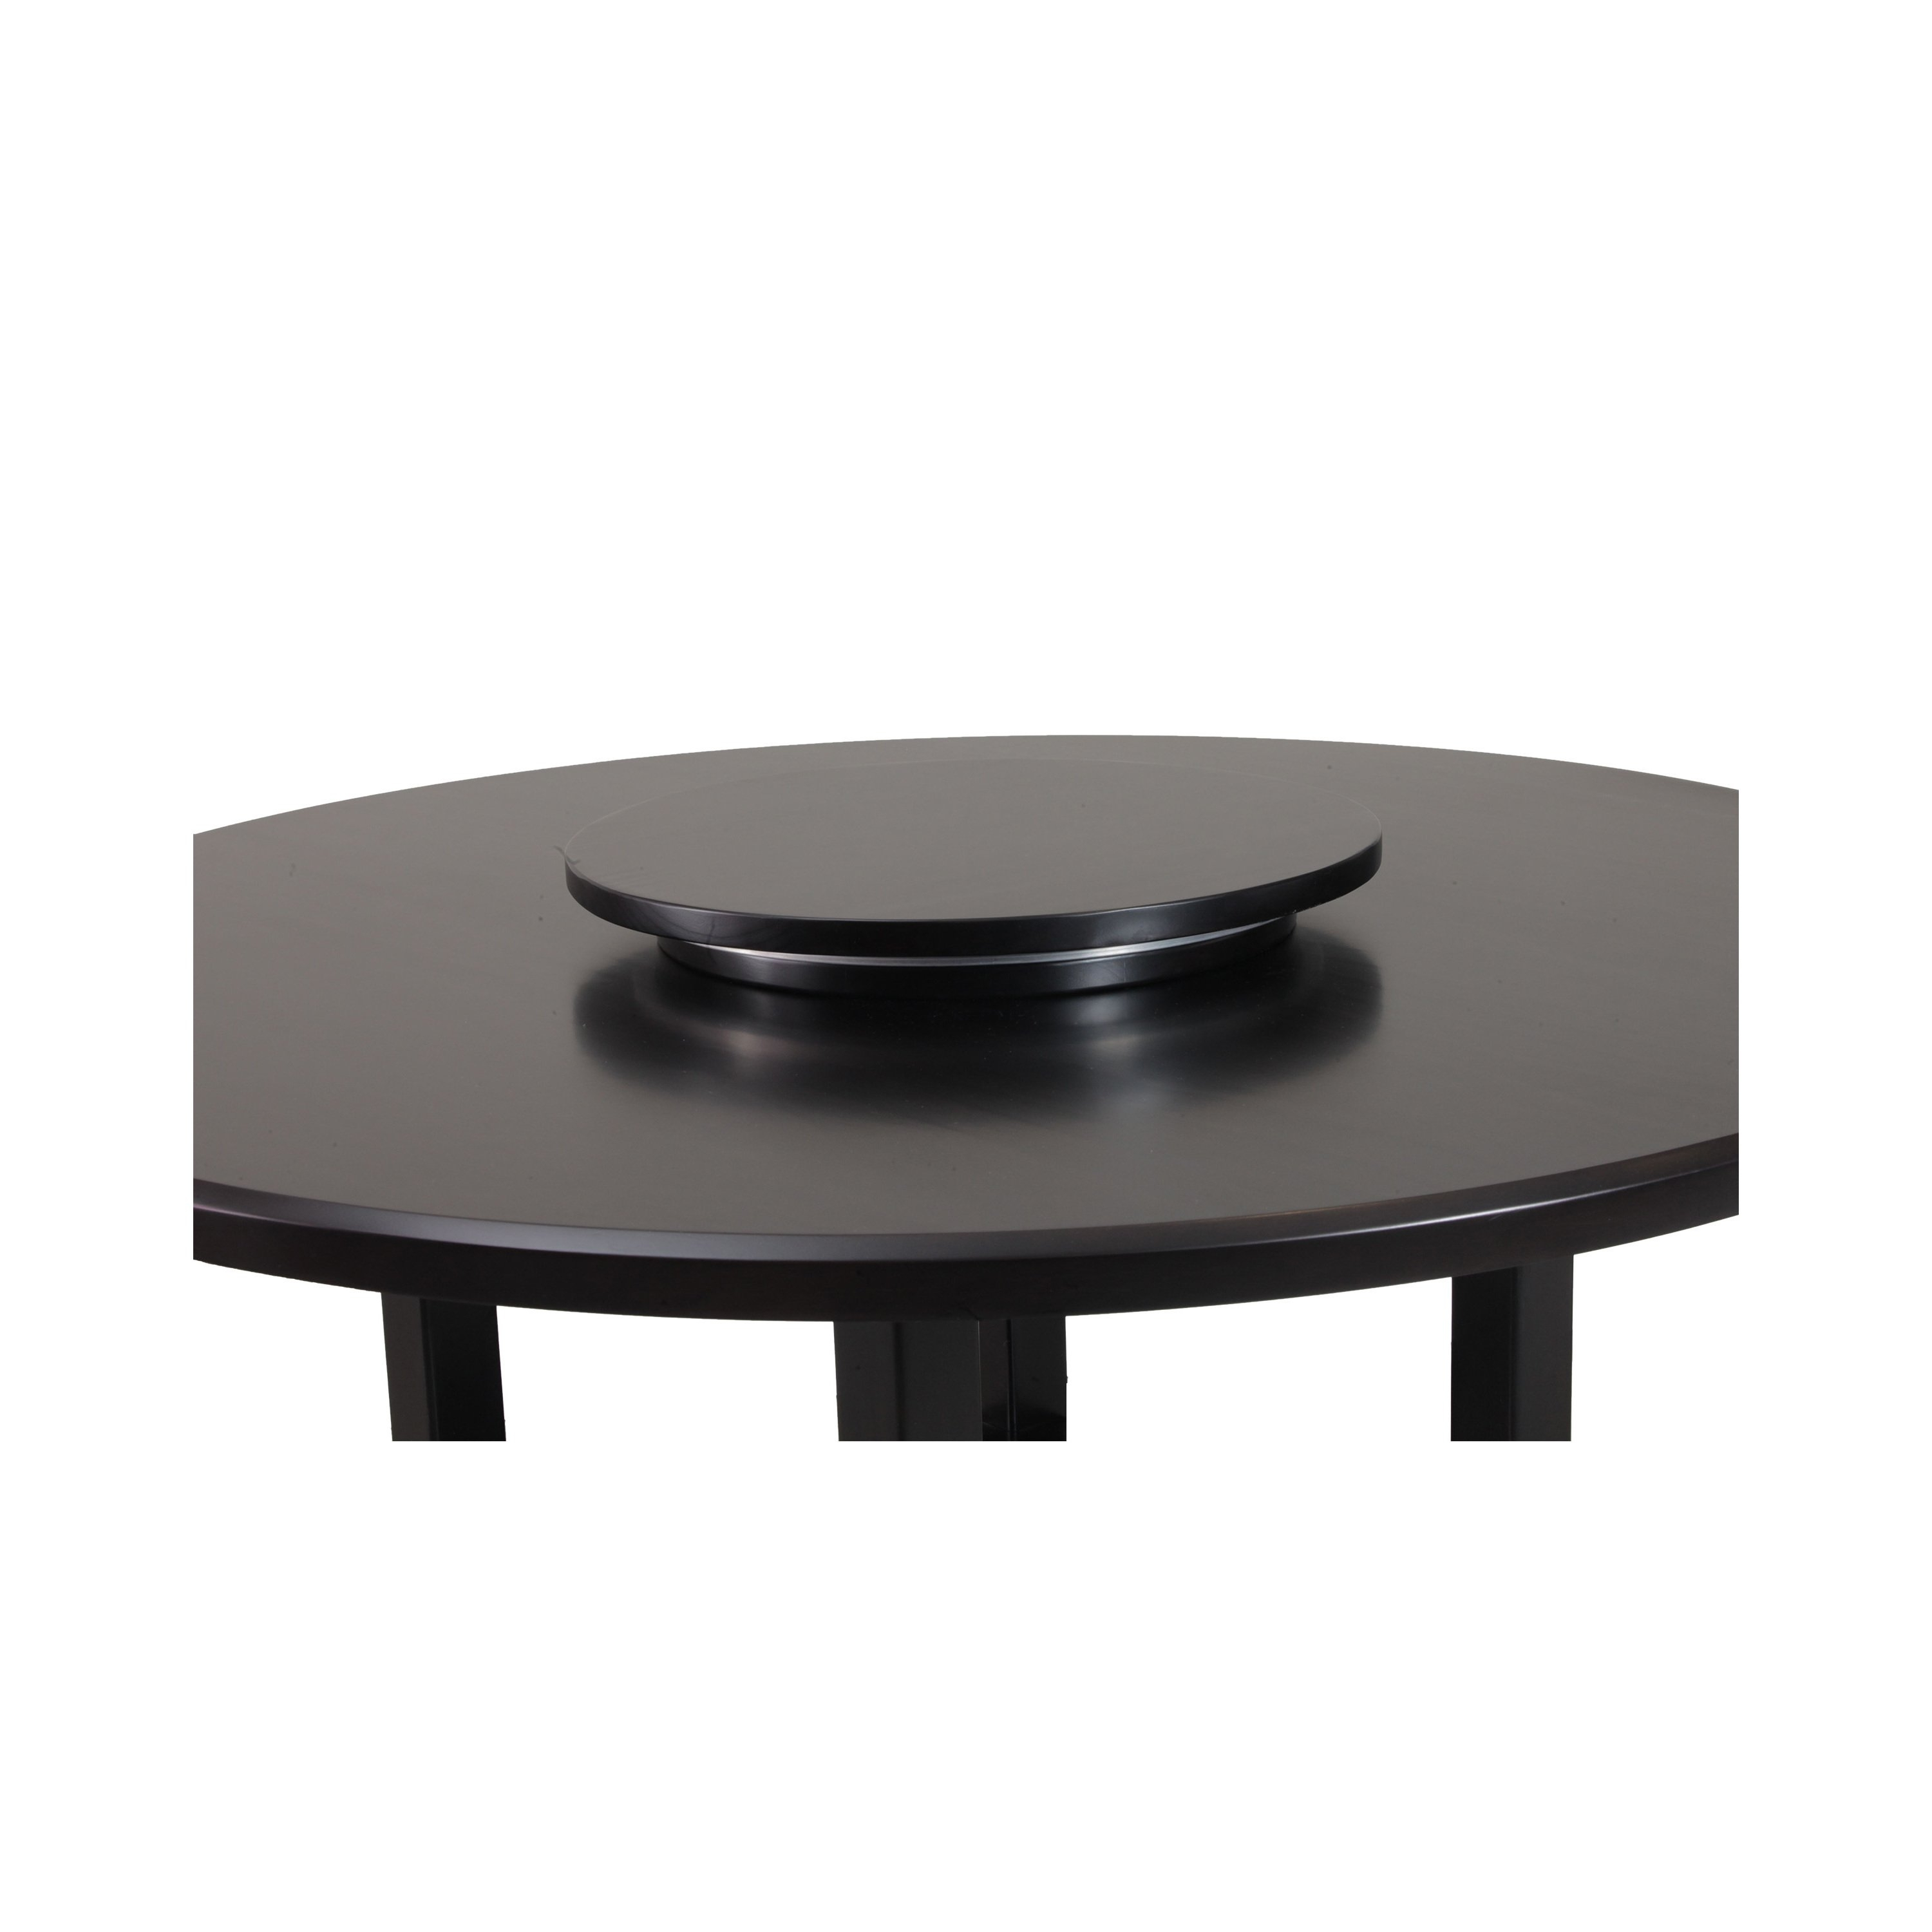 Shop Caden Dining Table – Cappuccino – Free Shipping Today Intended For Most Up To Date Caden Round Dining Tables (View 16 of 20)